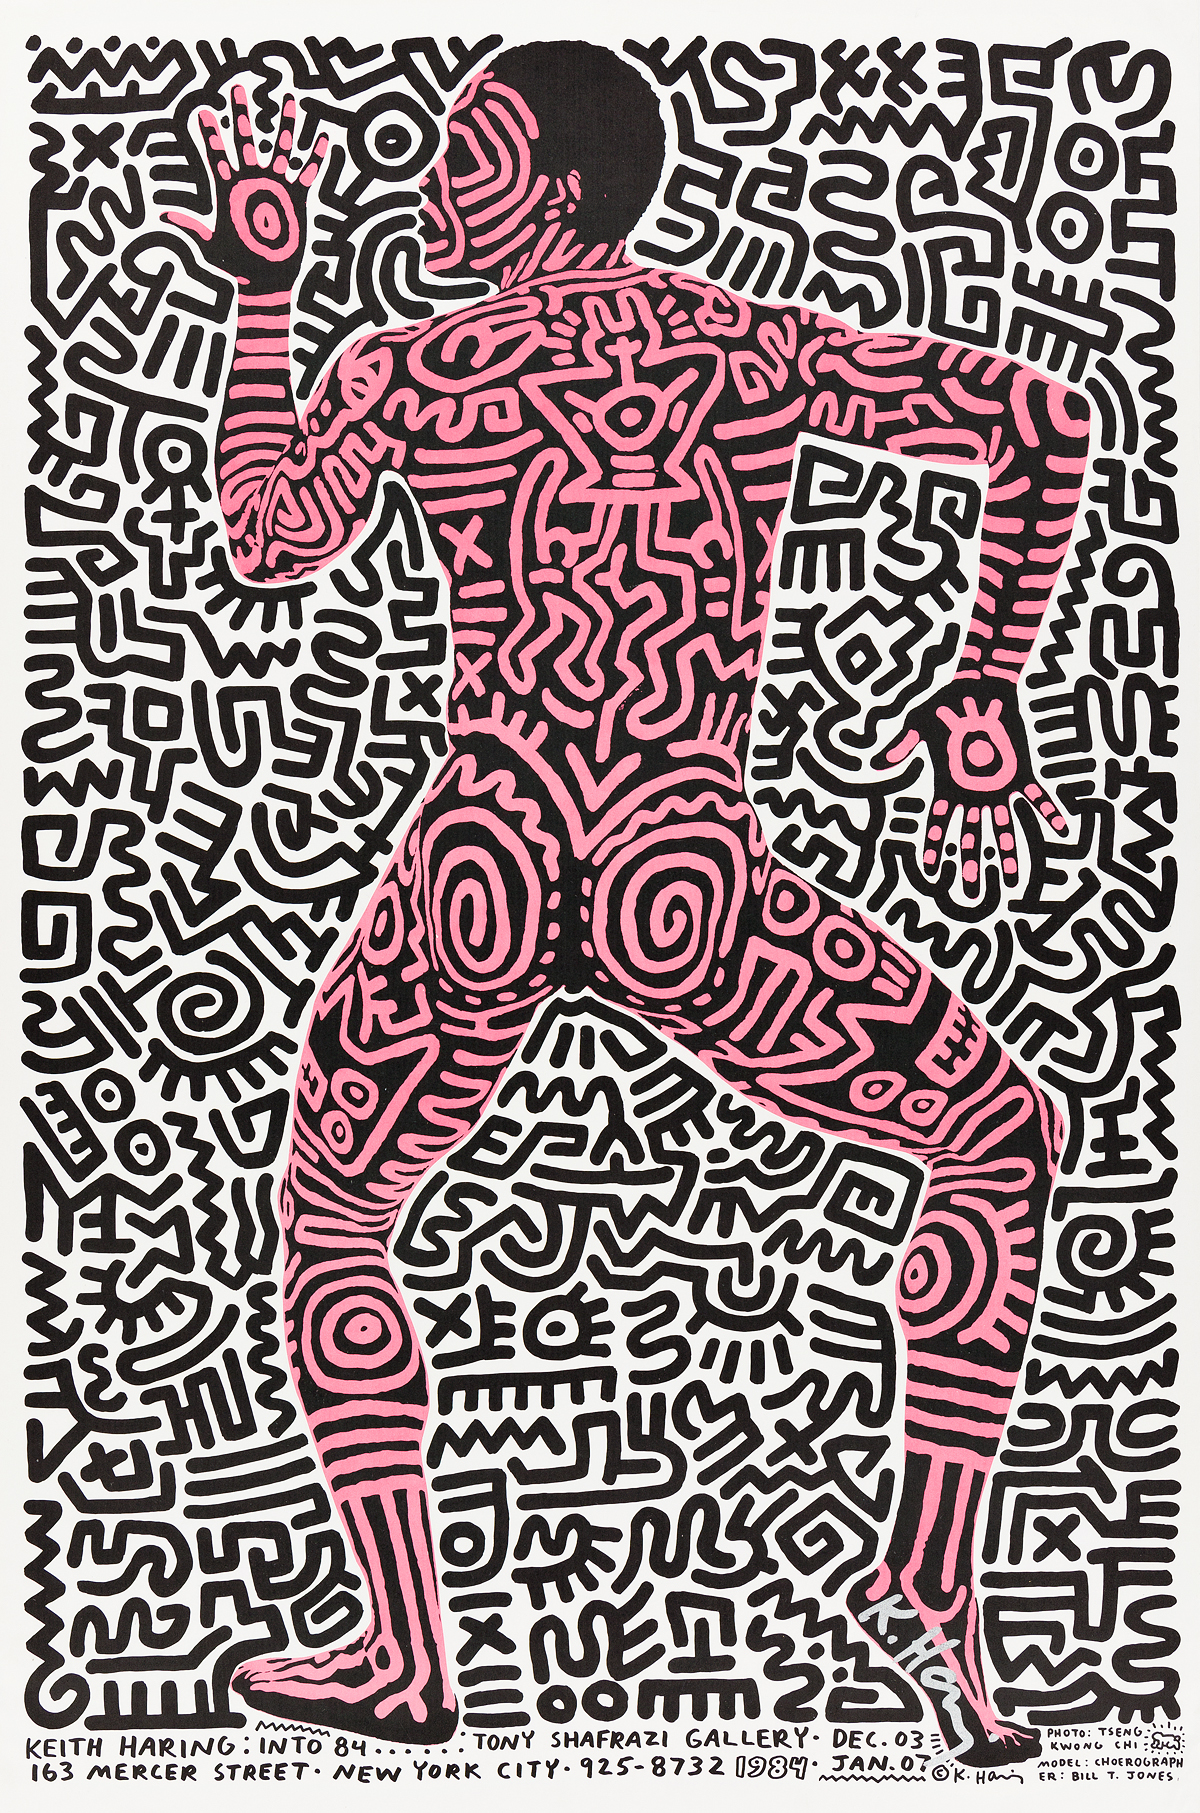 KEITH HARING (1958-1990). KEITH HARING : INTO 84. 1983. 34x22 inches, 88x57 cm.